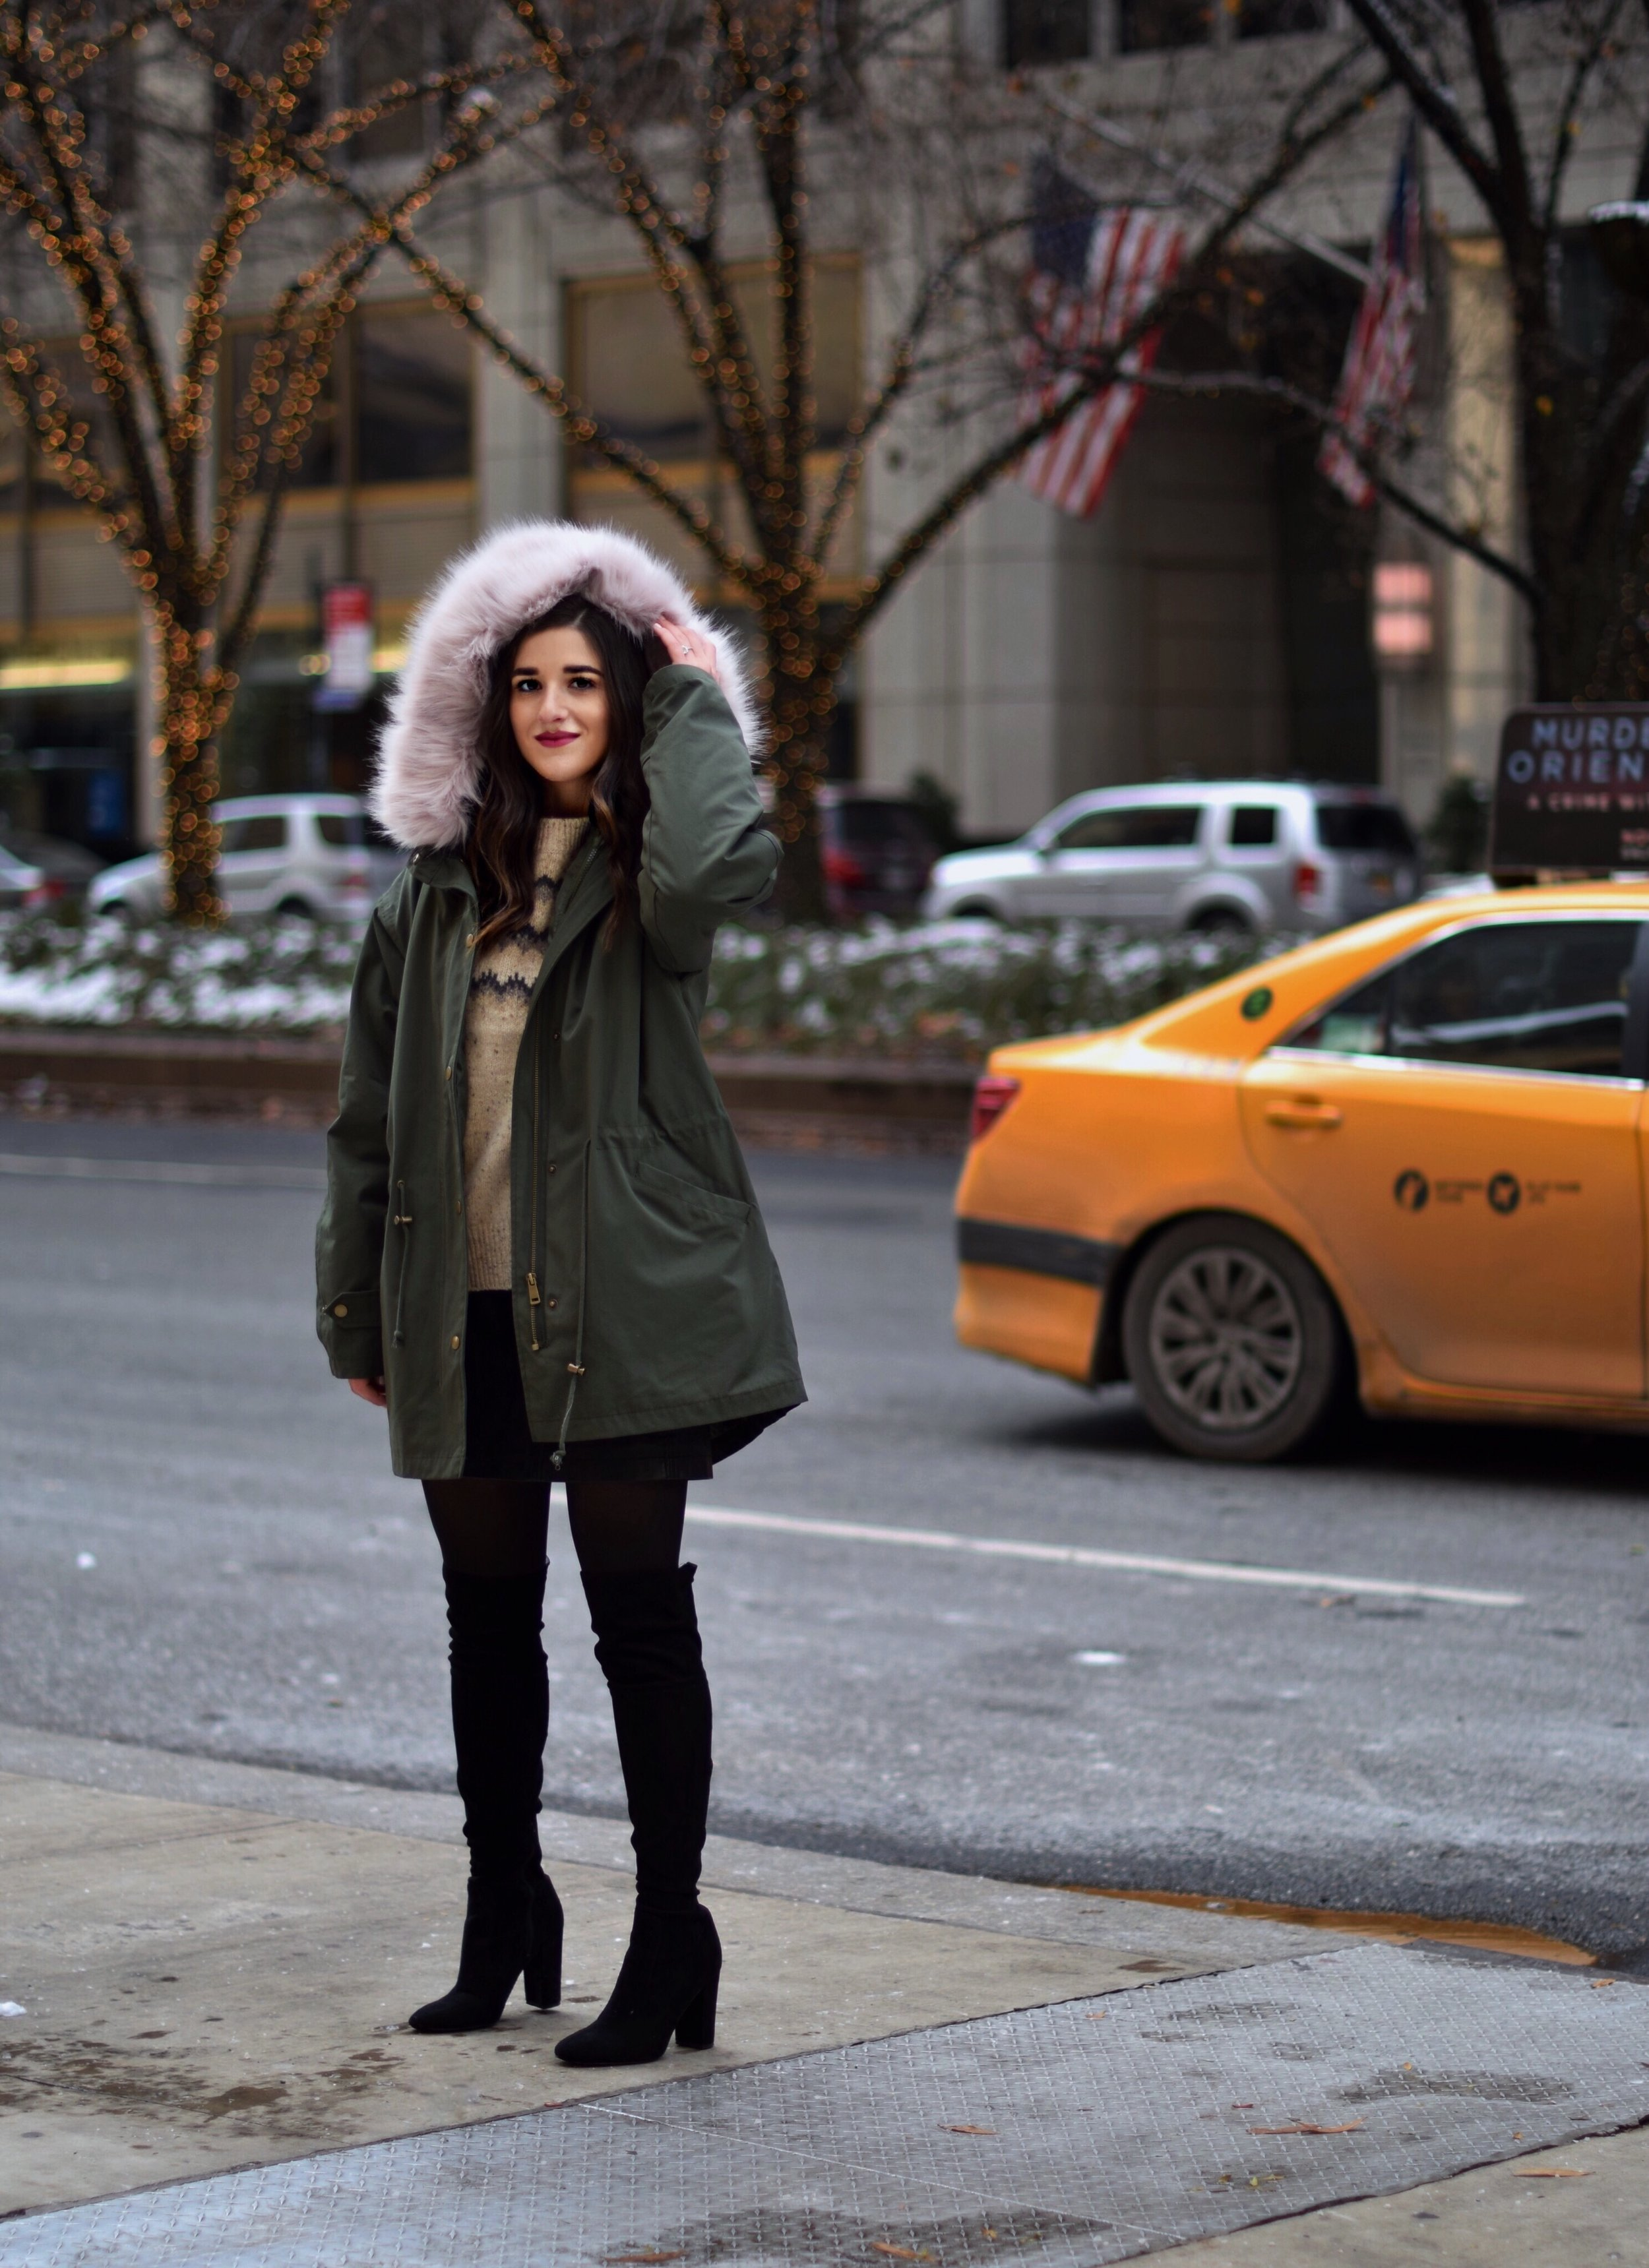 The Perfect Parka 10 Coats To Gift This Season Esther Santer Fashion Blog NYC Street Style Blogger Outfit OOTD Trendy Urban Outfitters Jacket Coat Girl Women Fur Hood Winter Black OTK Boots Cashmere Shopping Sweater Shoes Cold Weather Holiday Presents.jpg